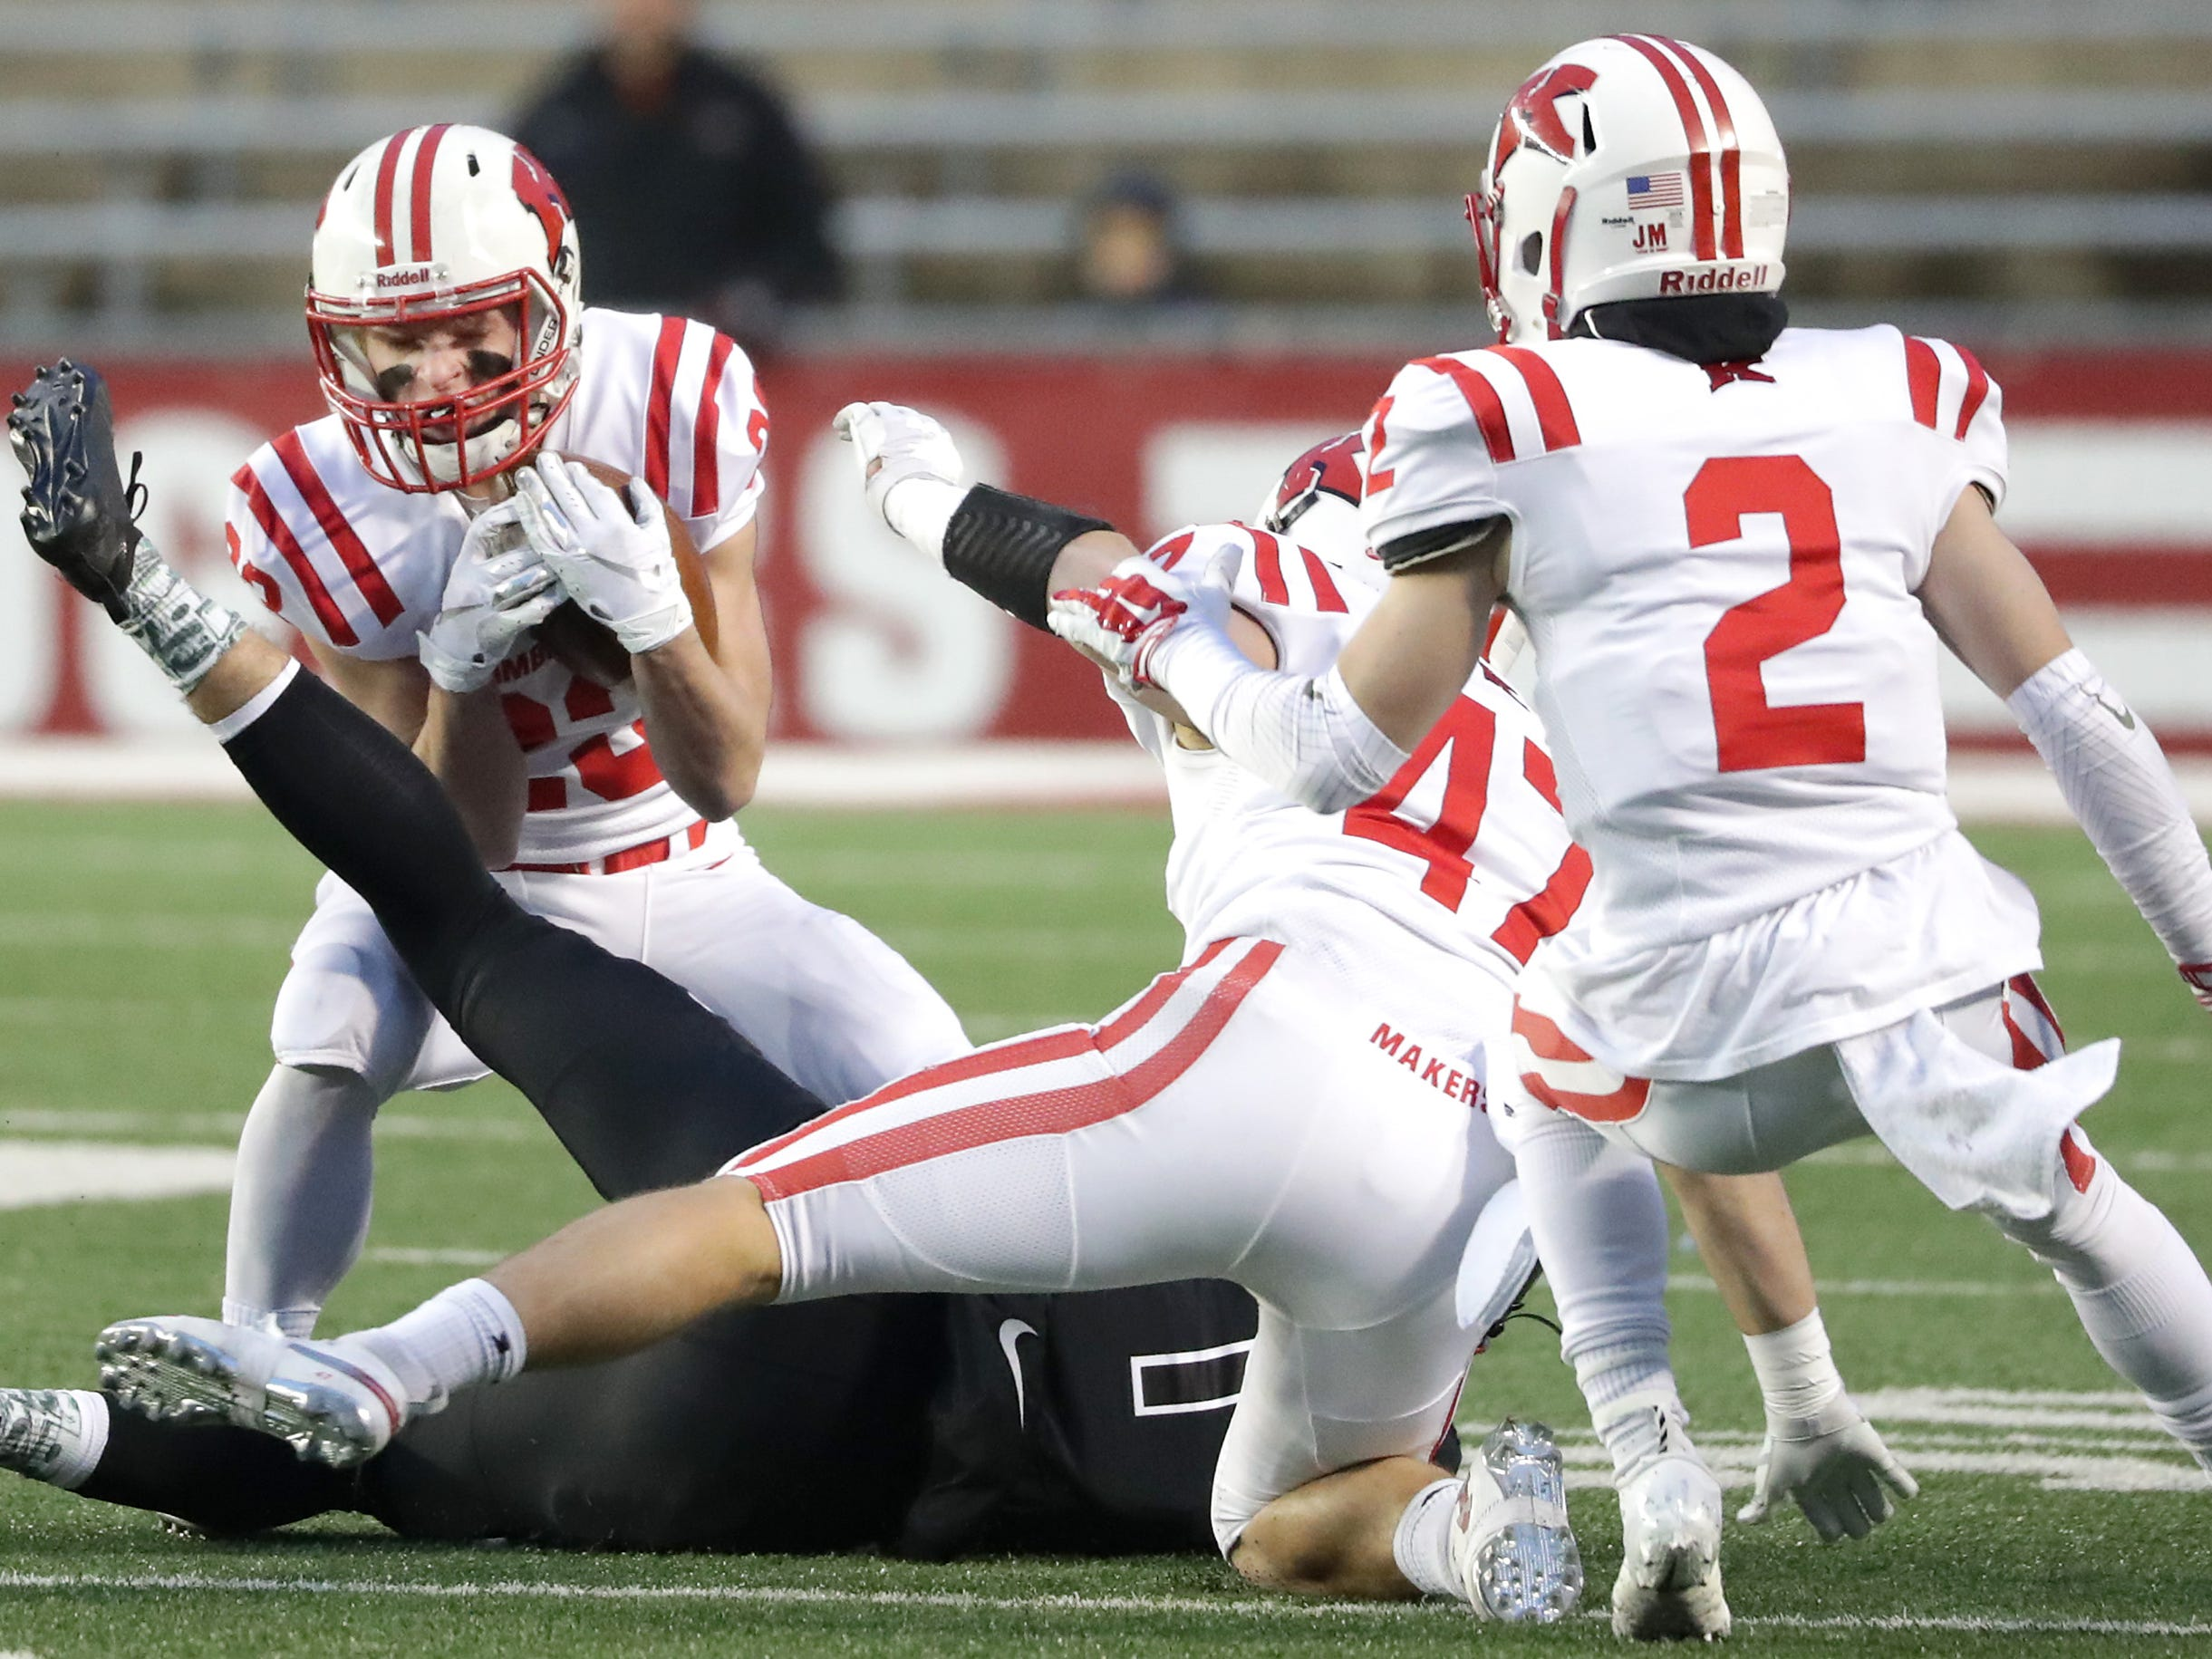 Kimberly High School's #23 Brady McConnell intercepts a pass against Muskego High School during the WIAA Division 1 state championship football game on Friday, November 16, 2018, at Camp Randall in Madison, Wis.